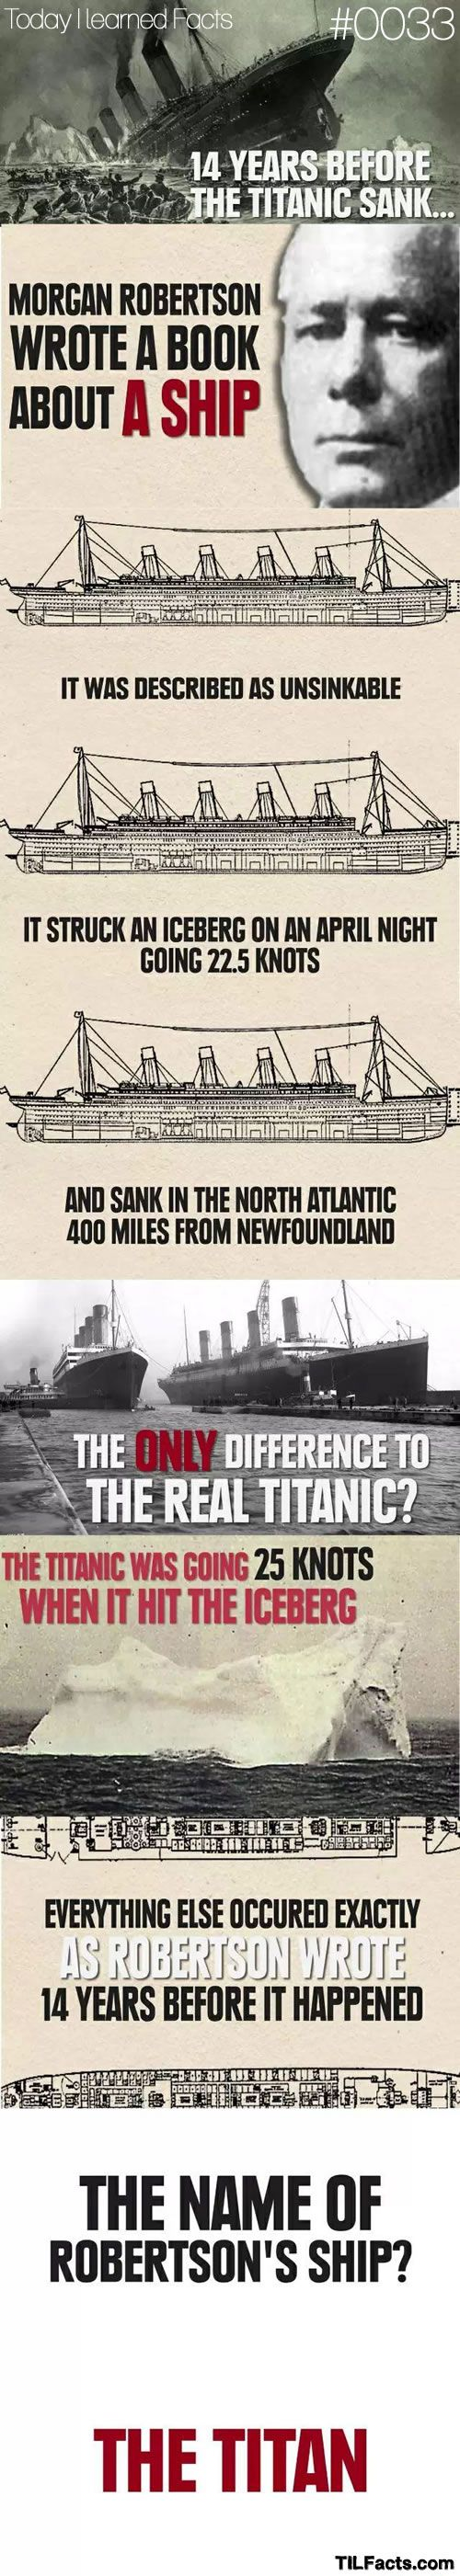 """In 1898, 14 years before the Titanic sank, Morgan Robertson wrote a book about a ship called the """"Titan"""" that crashed into an iceberg and sank.The book is Futility or The Wreck of the Titan. In addition to having the same outcome (crashing into an iceberg and sinking, the fictional """"Titan"""" and the real-life """"Titanic"""" had other bizarre similarities. They were both over 800 feet long. They both were known as """"unsinkable"""". They both sunk in the North Atlantic...."""